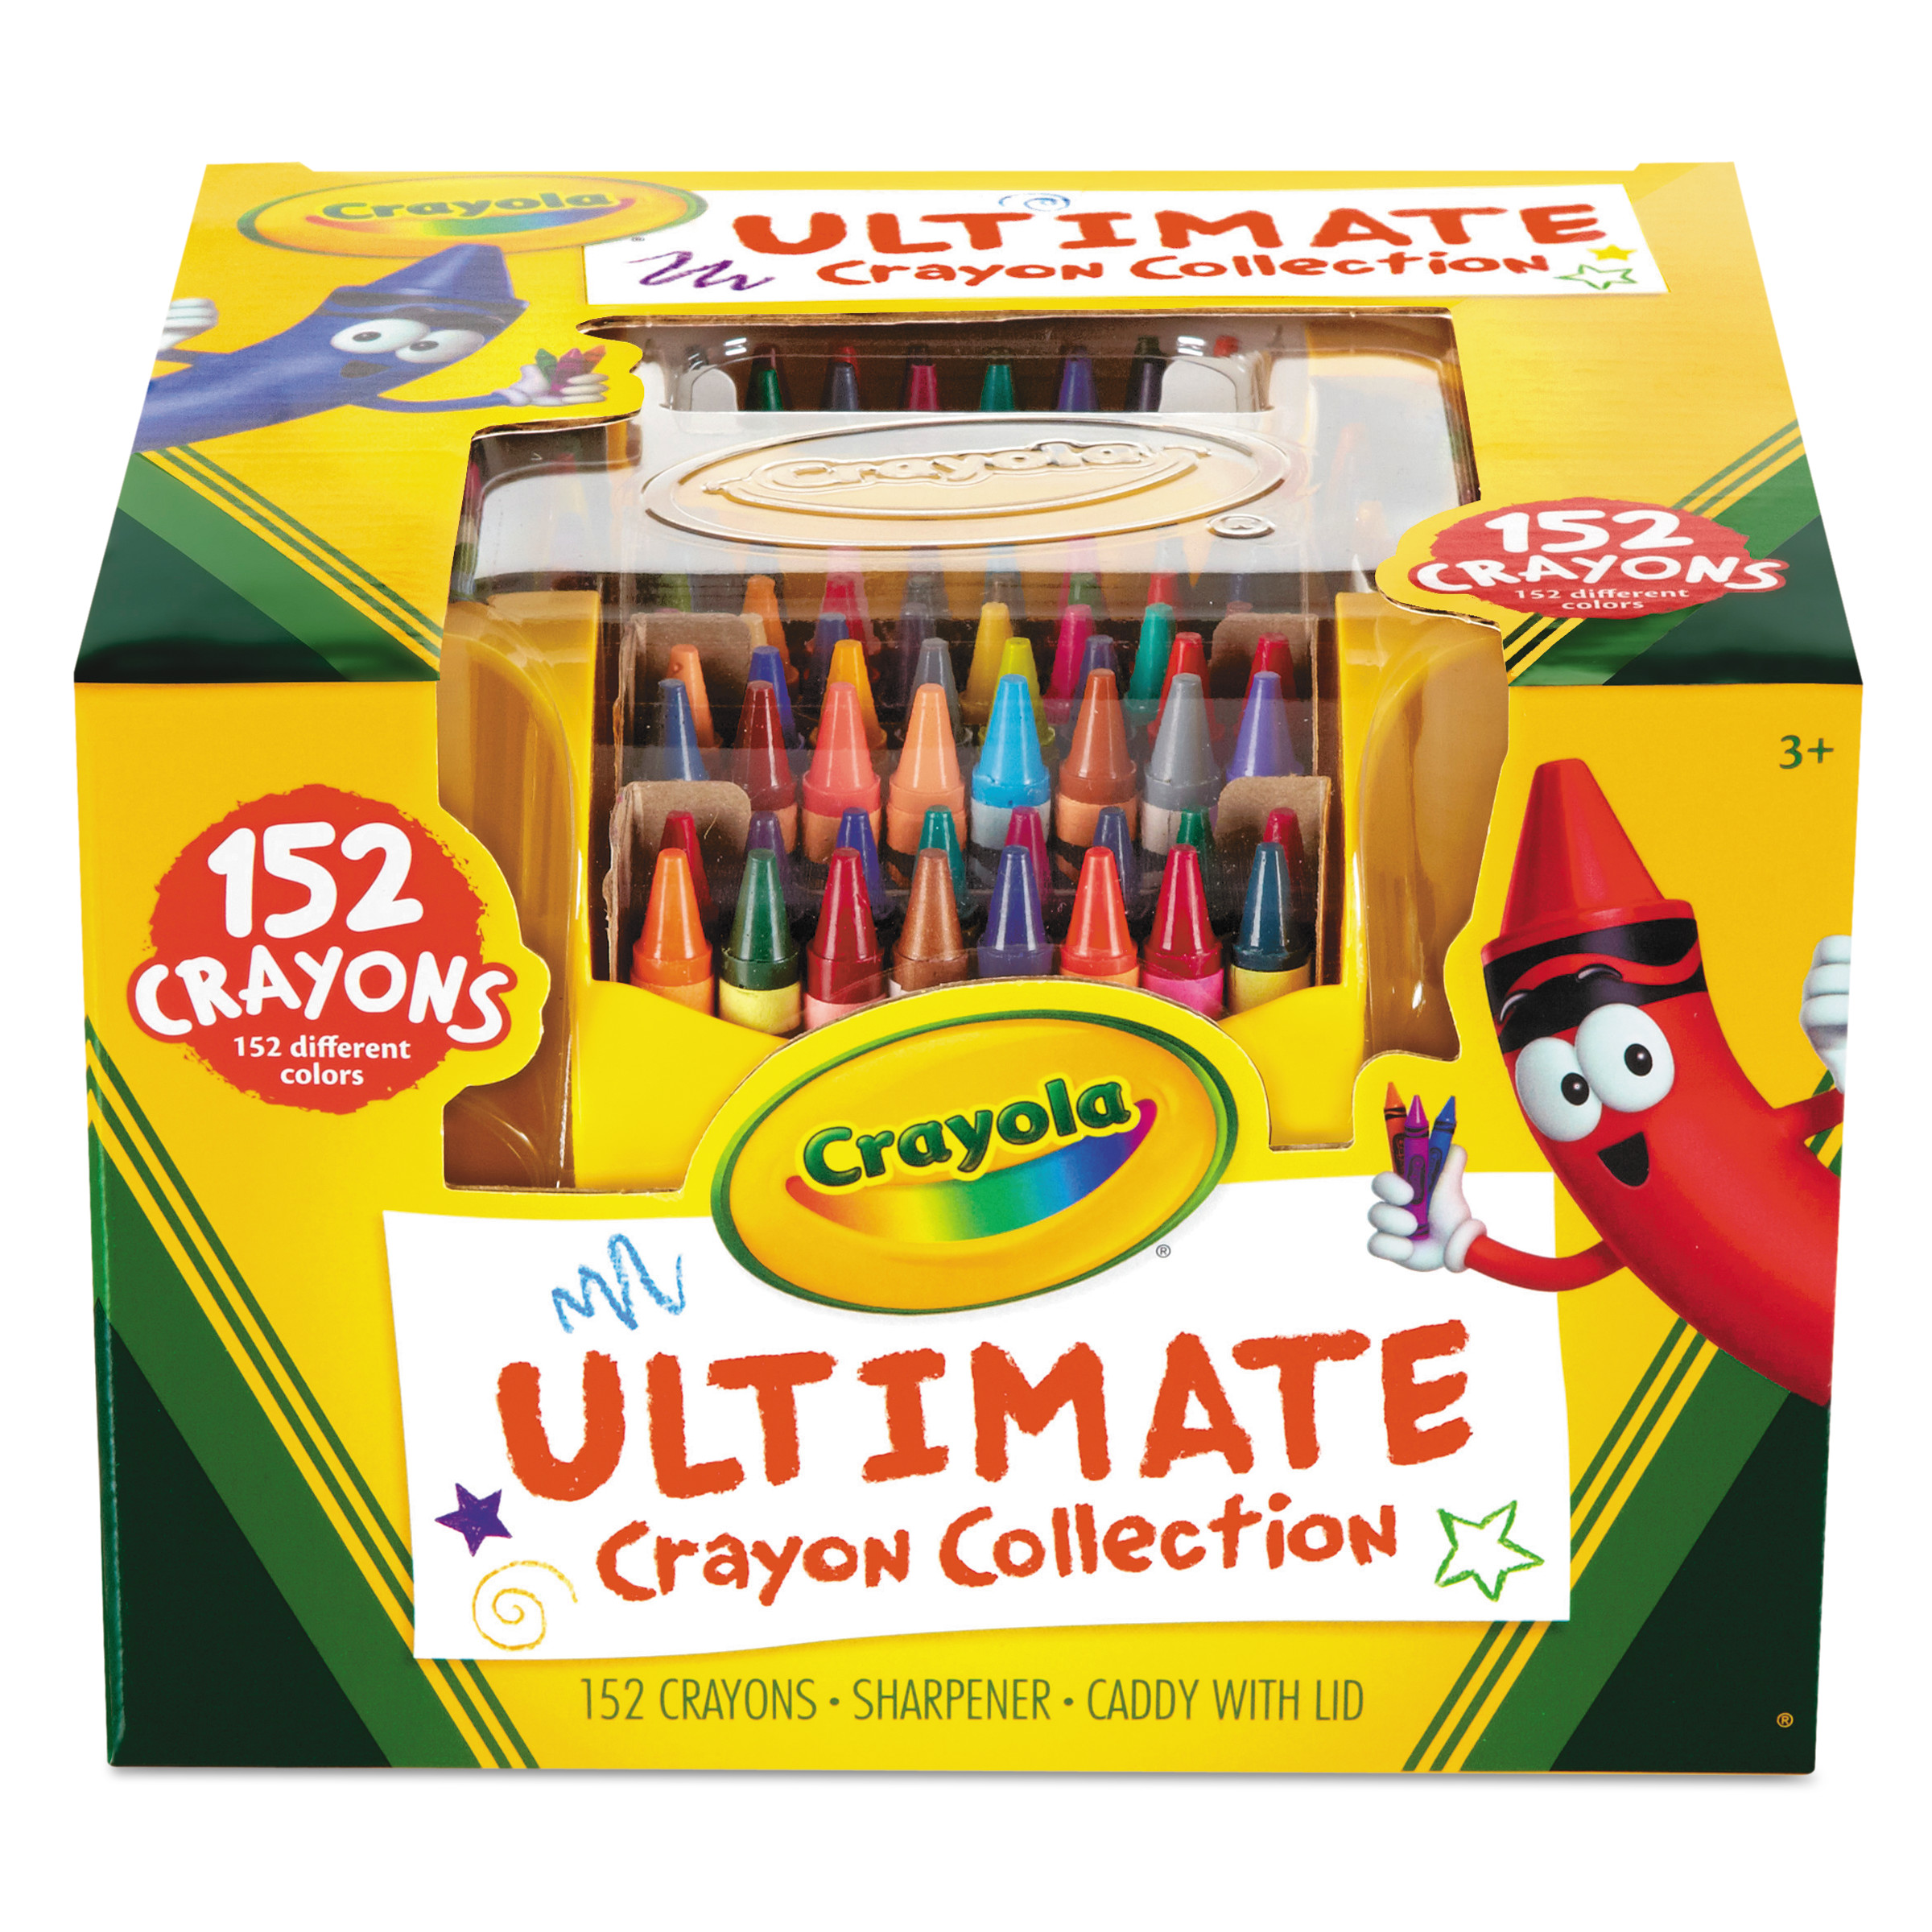 Crayola Ultimate Crayon Case, Sharpener Caddy, 152 Colors